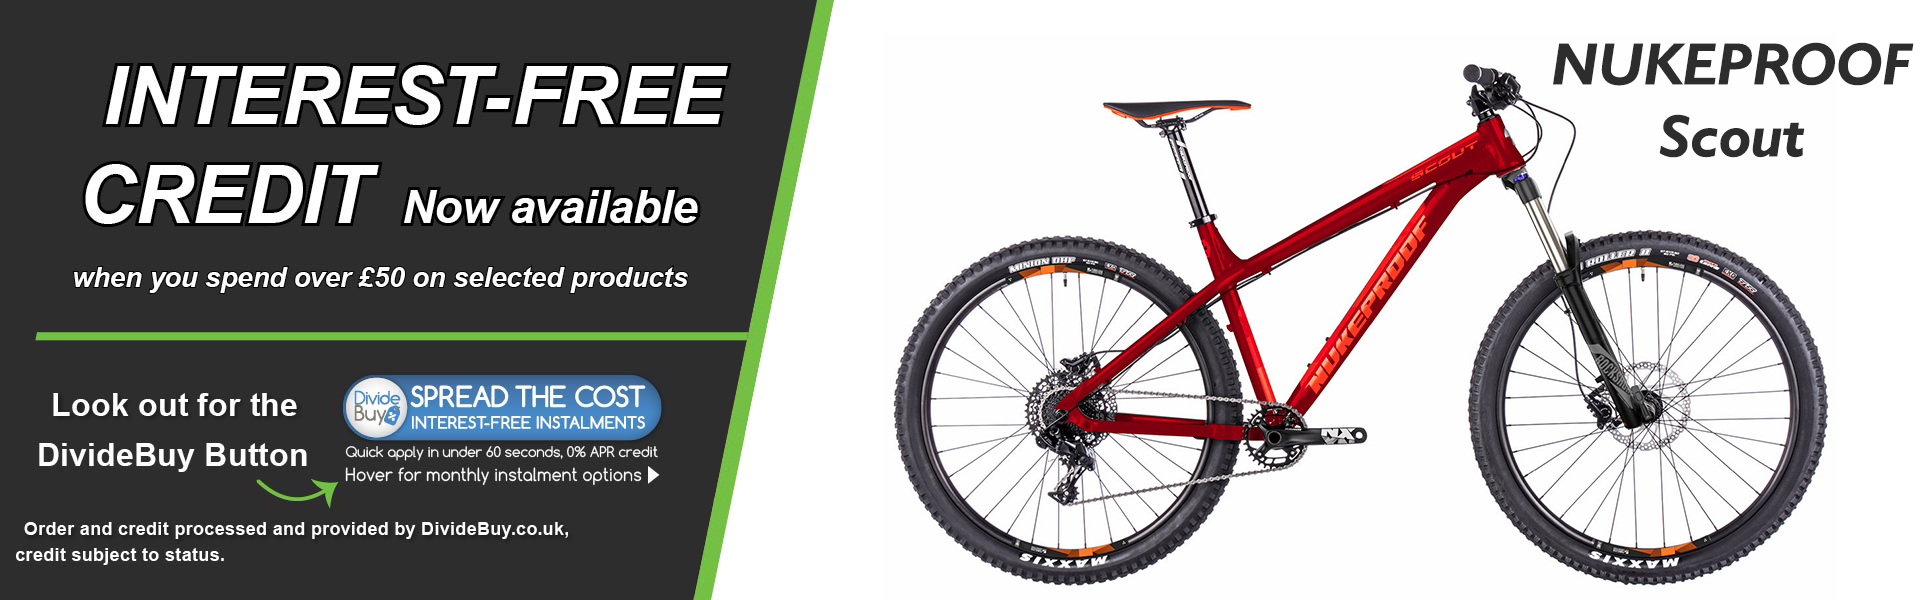 Interest Free Nukeproof scout